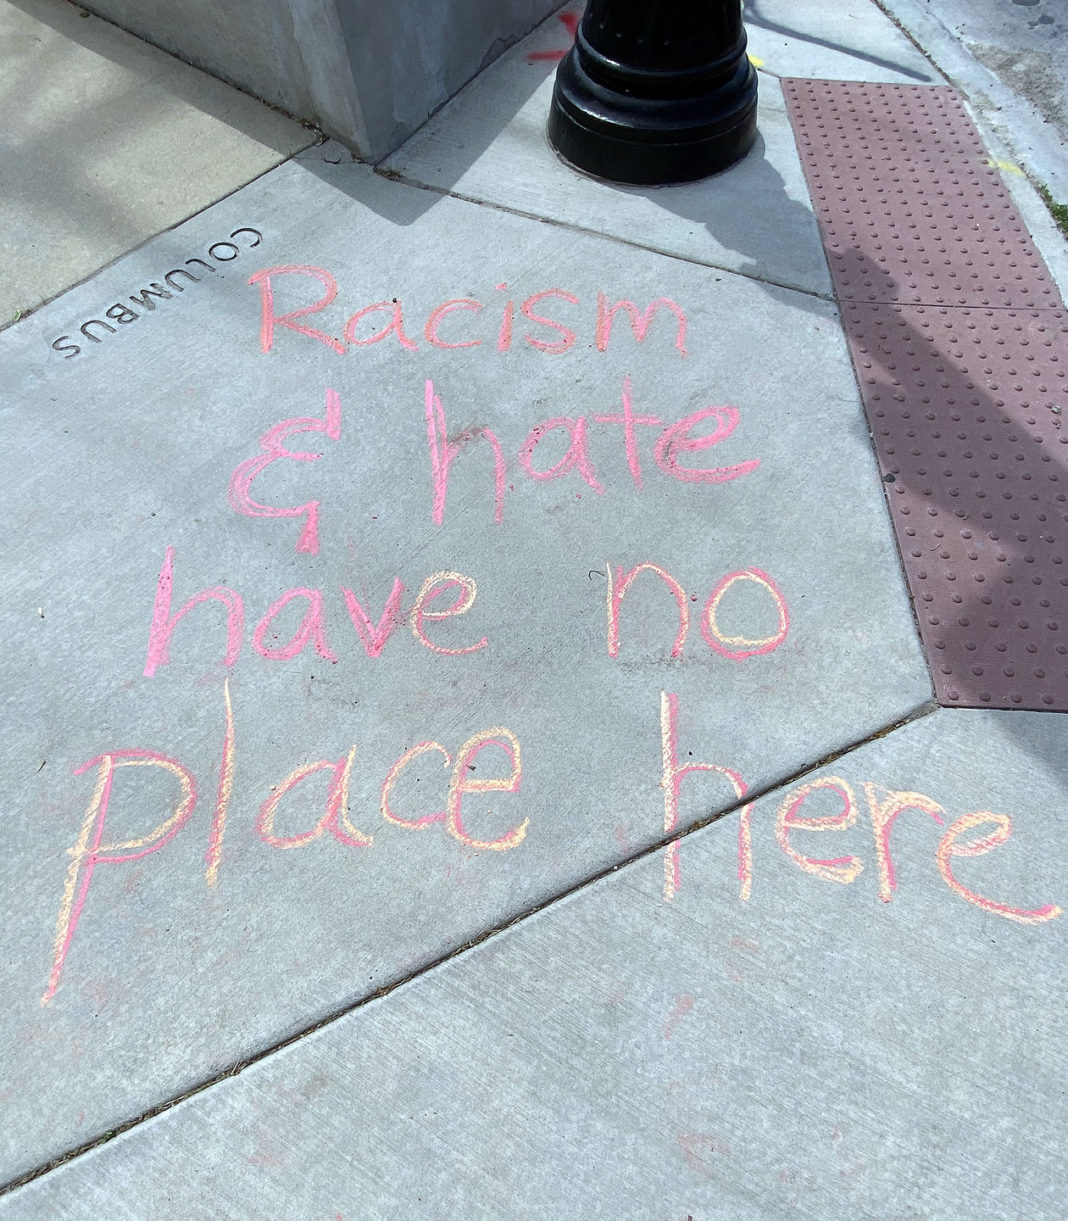 """Chalk reads """"Racism and hate have no place here"""""""